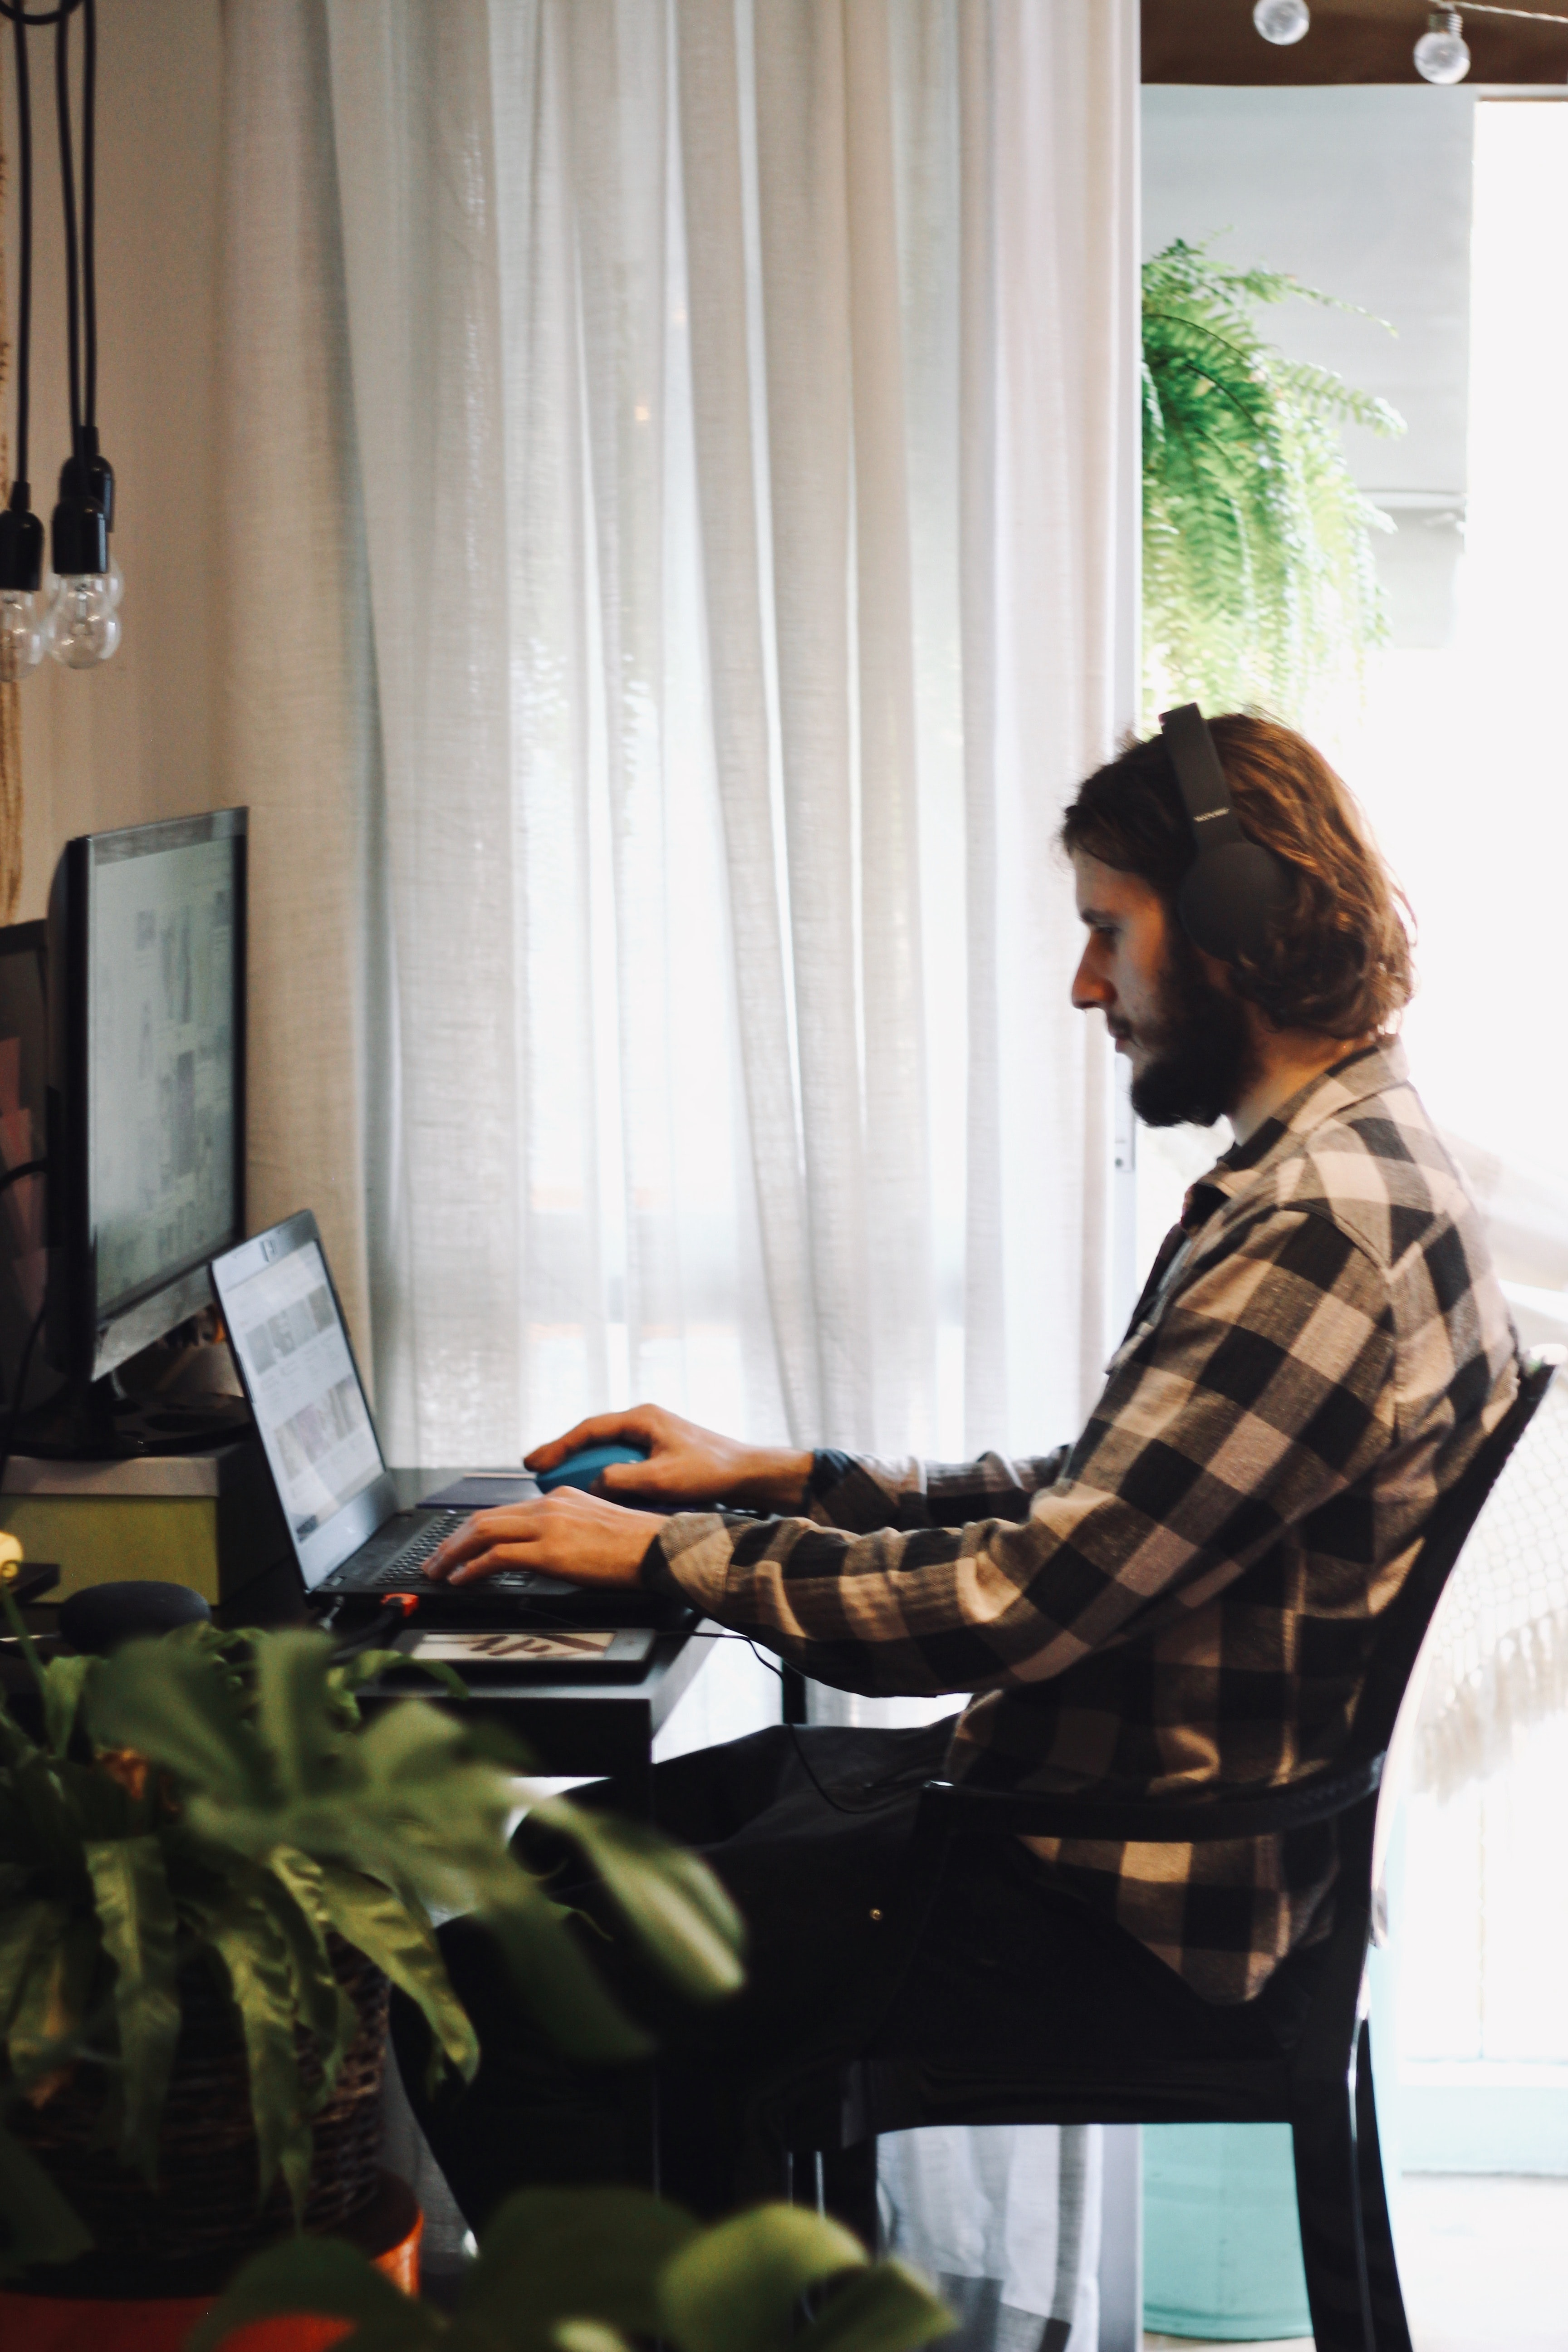 3 Reasons the Remote Work Trend is Here to Stay